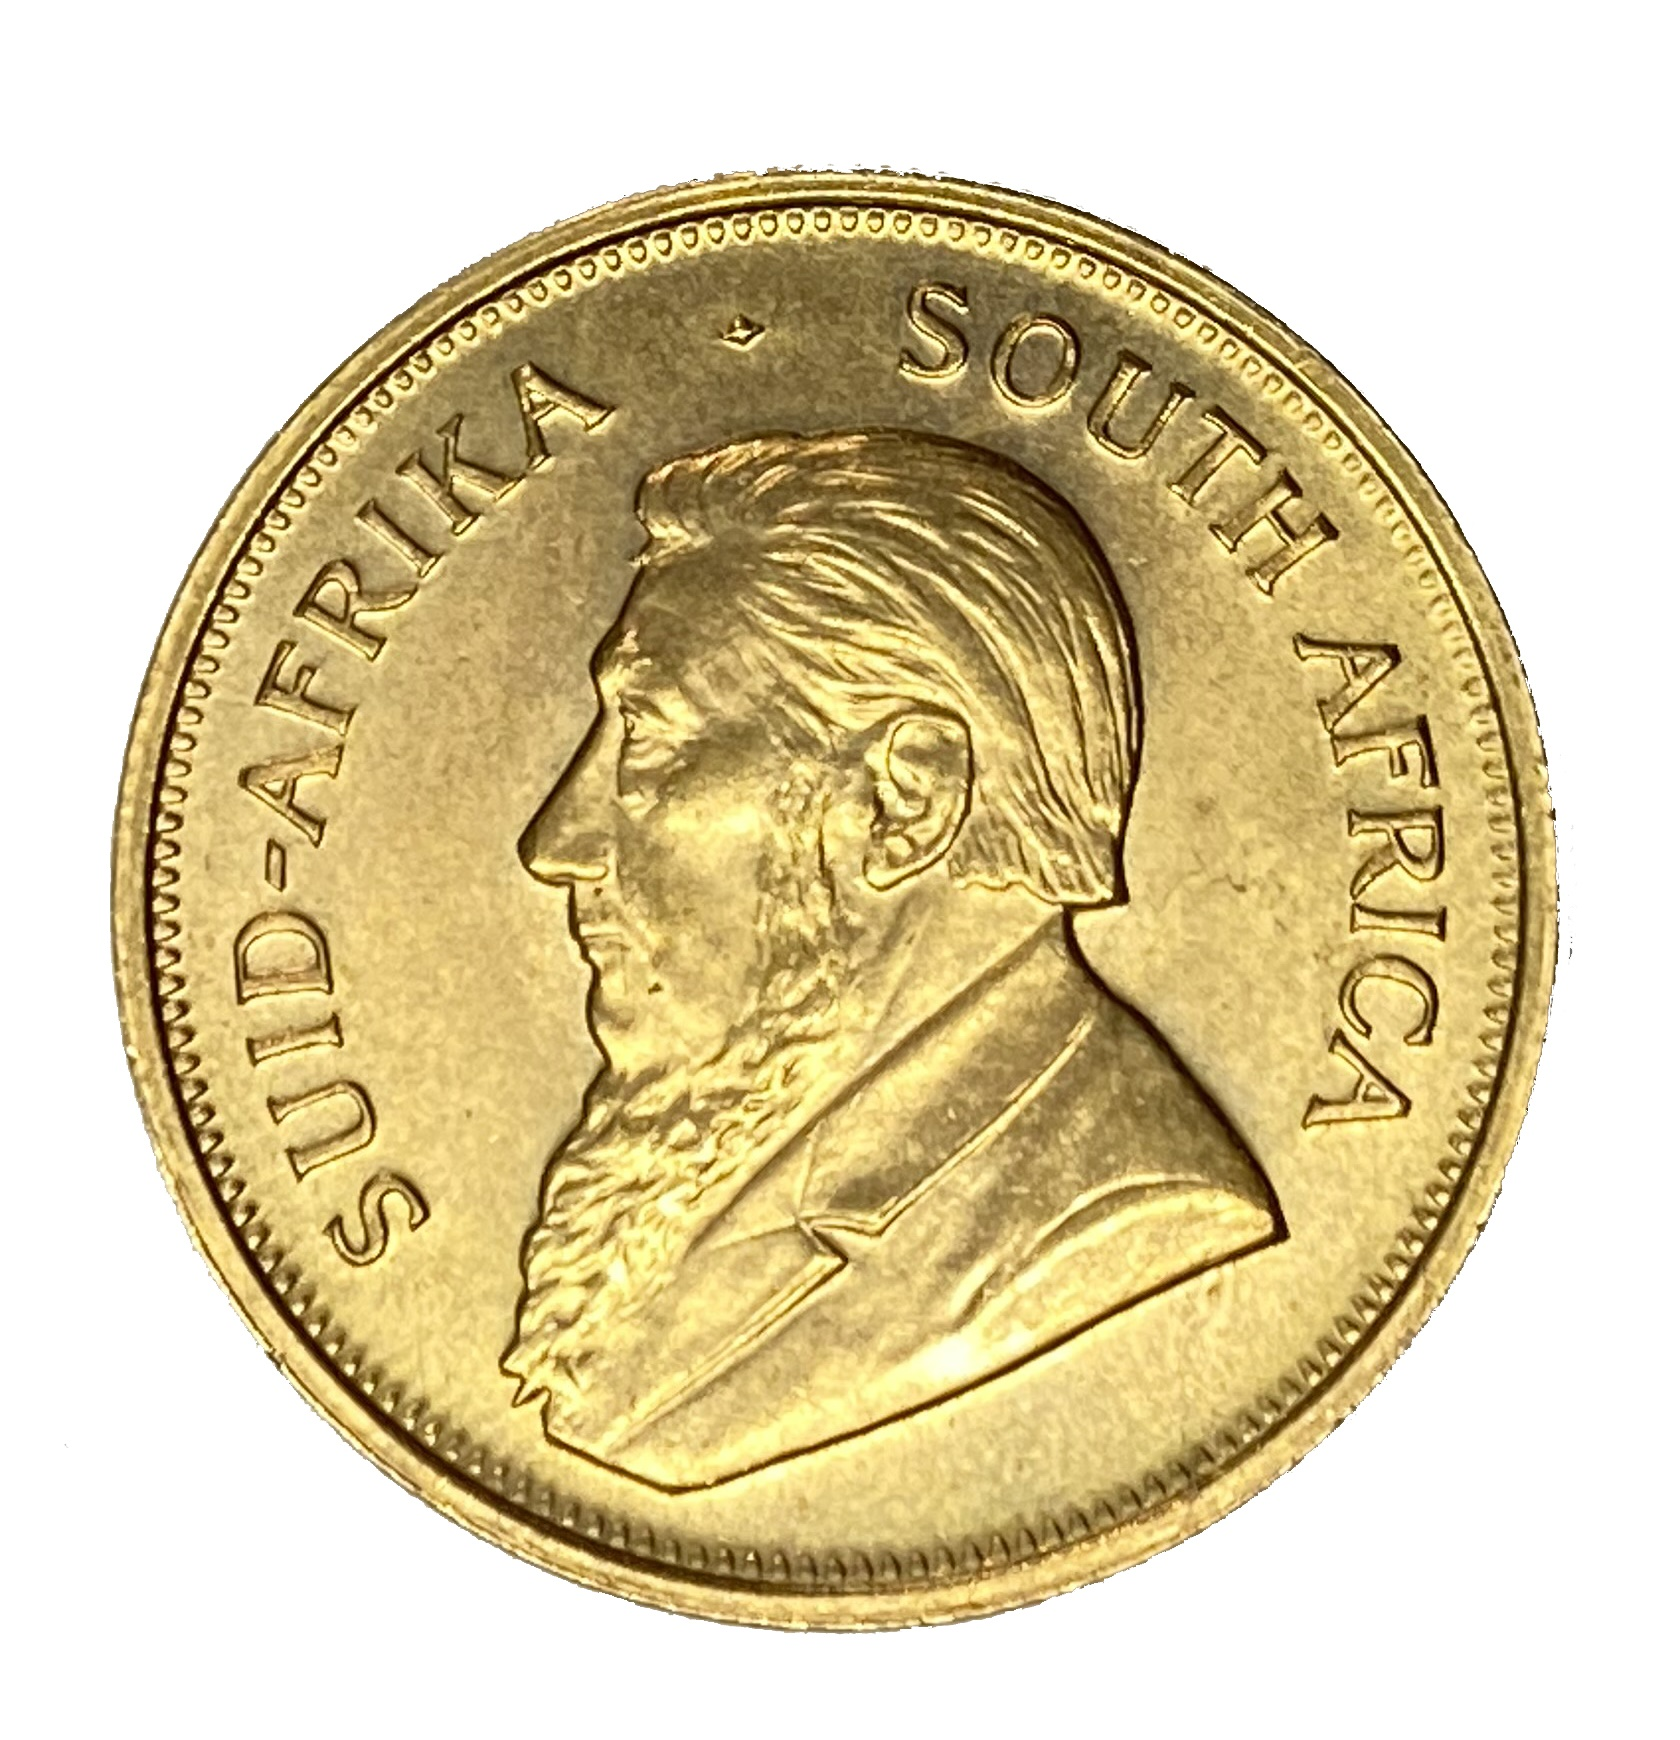 South Africa, gold Krugerrand coin, 1974